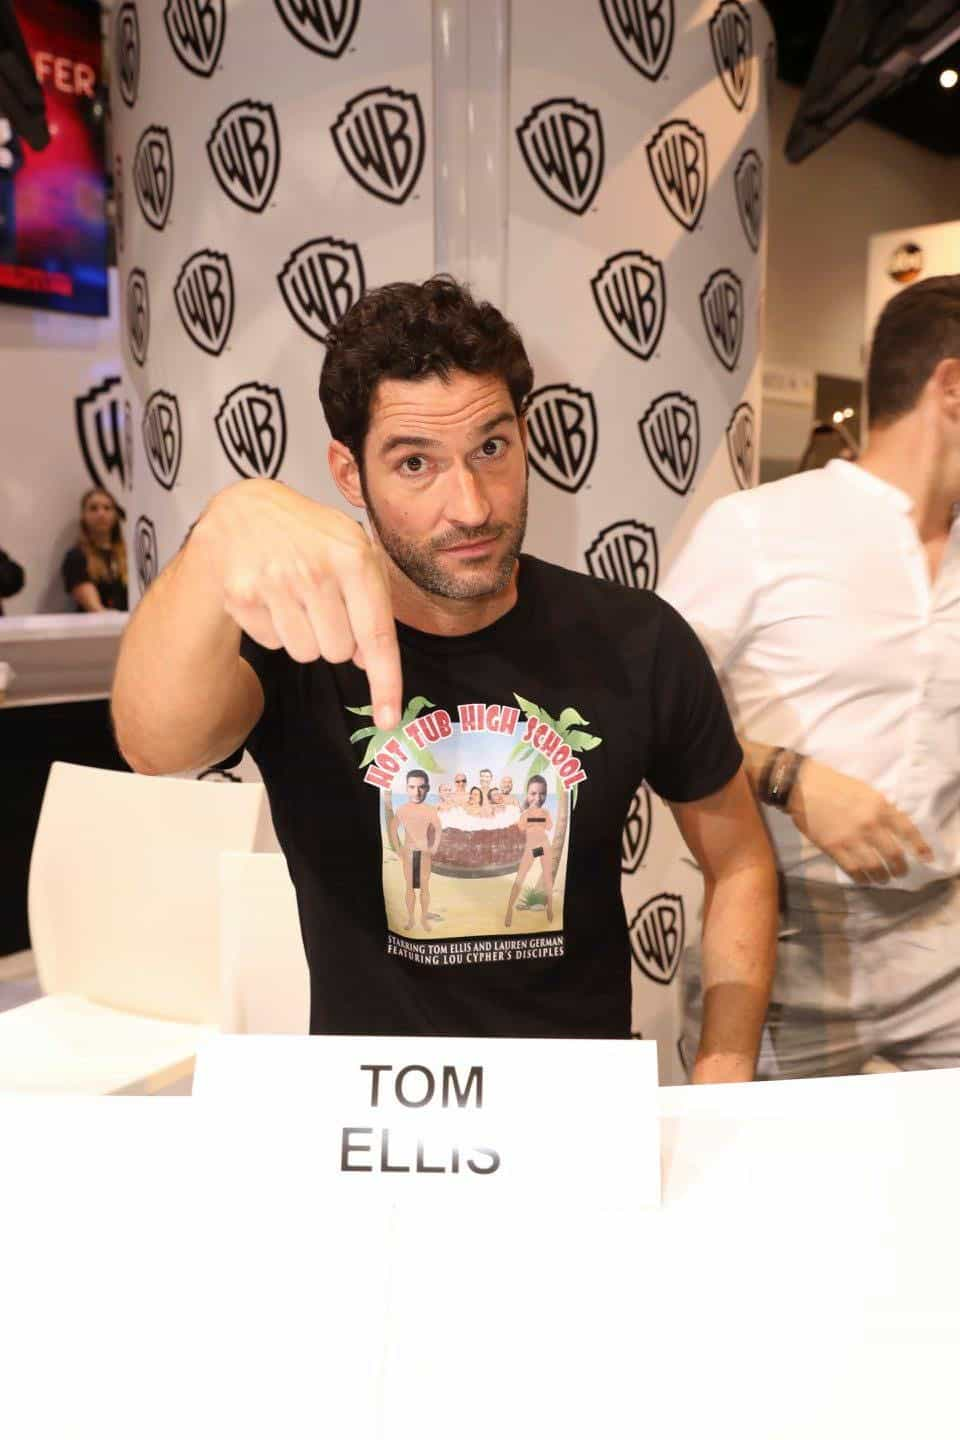 LUCIFER star Tom Ellis brings the heat to Comic-Con 2017 at the Warner Bros. booth on Saturday, July 22. #WBSDCC (© 2017 WBEI. All Rights Reserved)